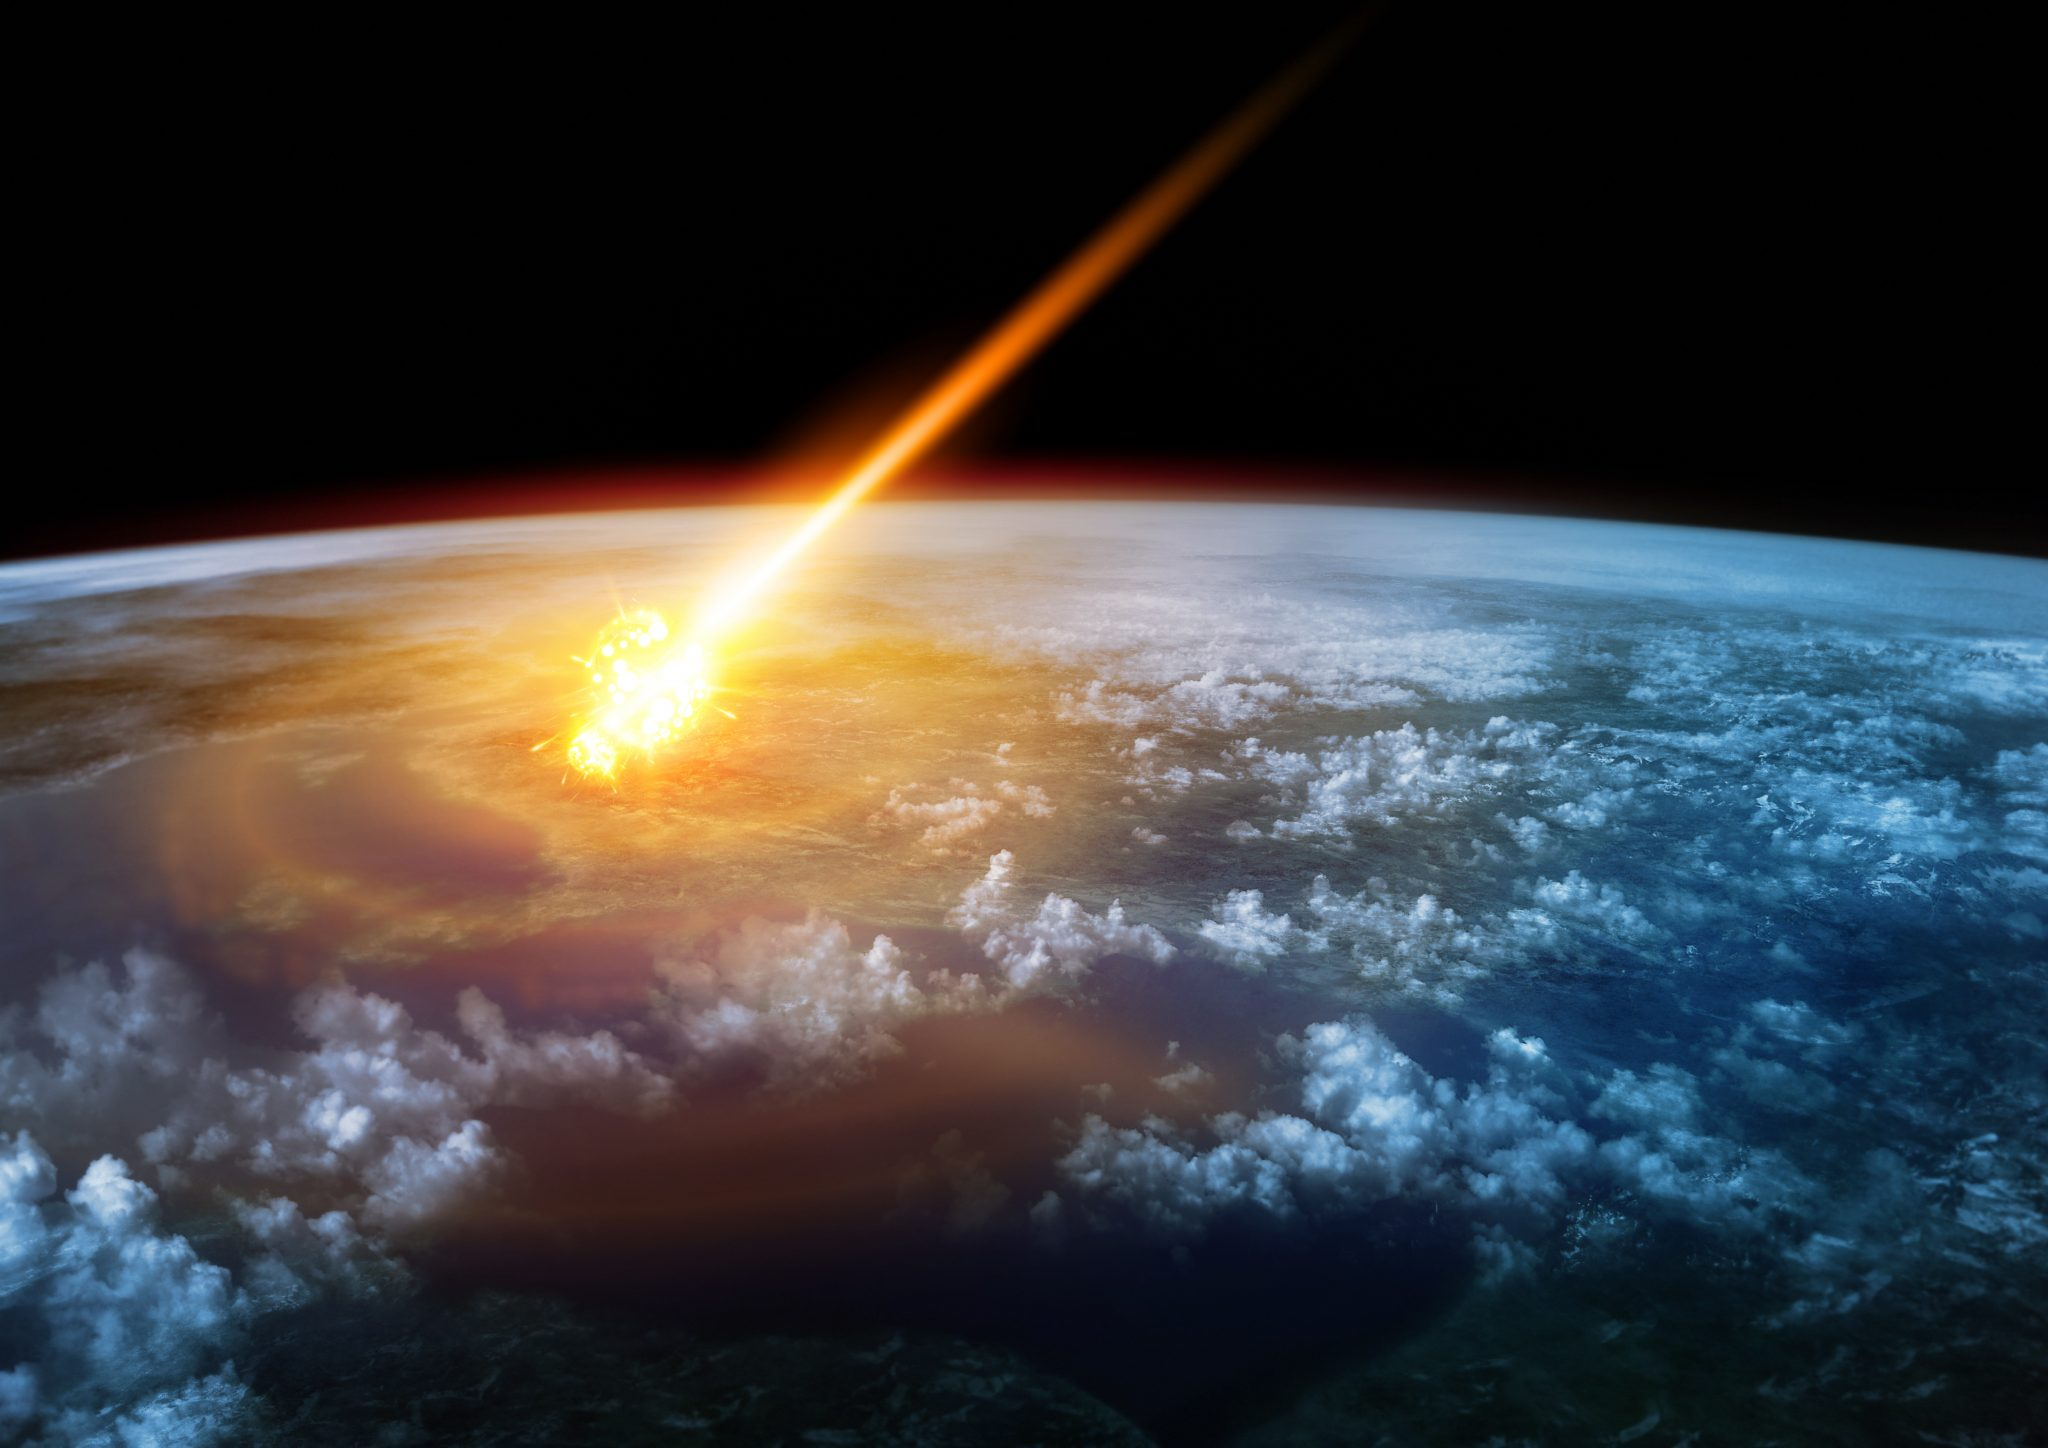 Our Lack of Focus on Near-Earth Objects Could Lead to Earth's Destruction